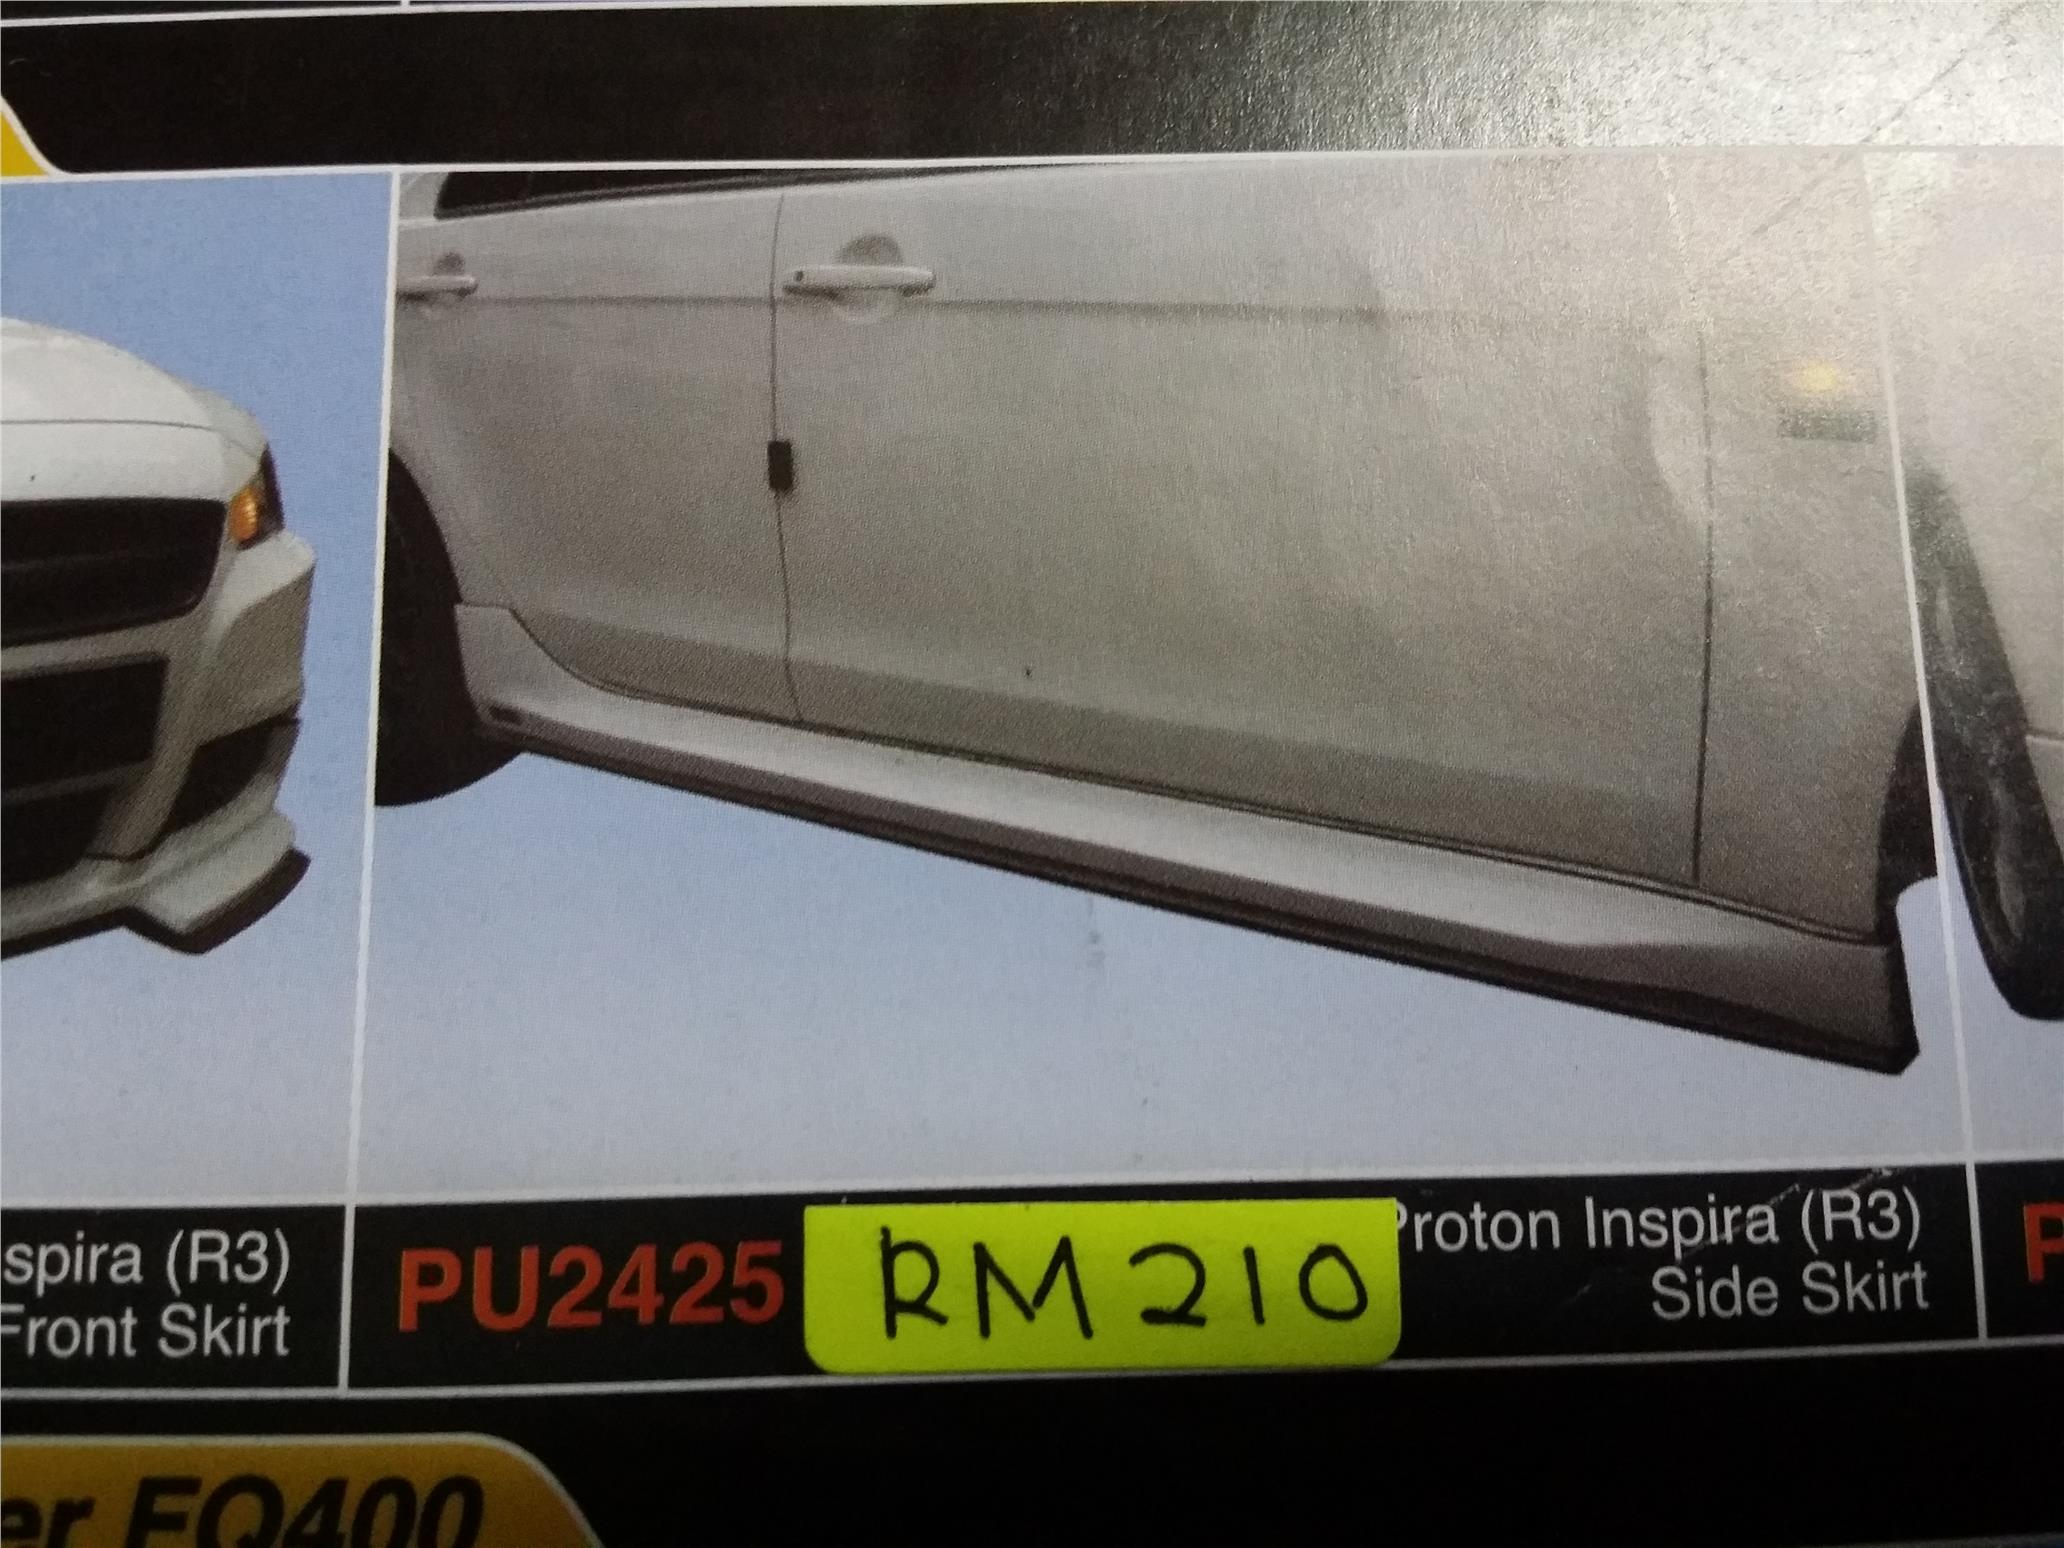 PROTON INSPIRA SIDE SKIRT PU2425